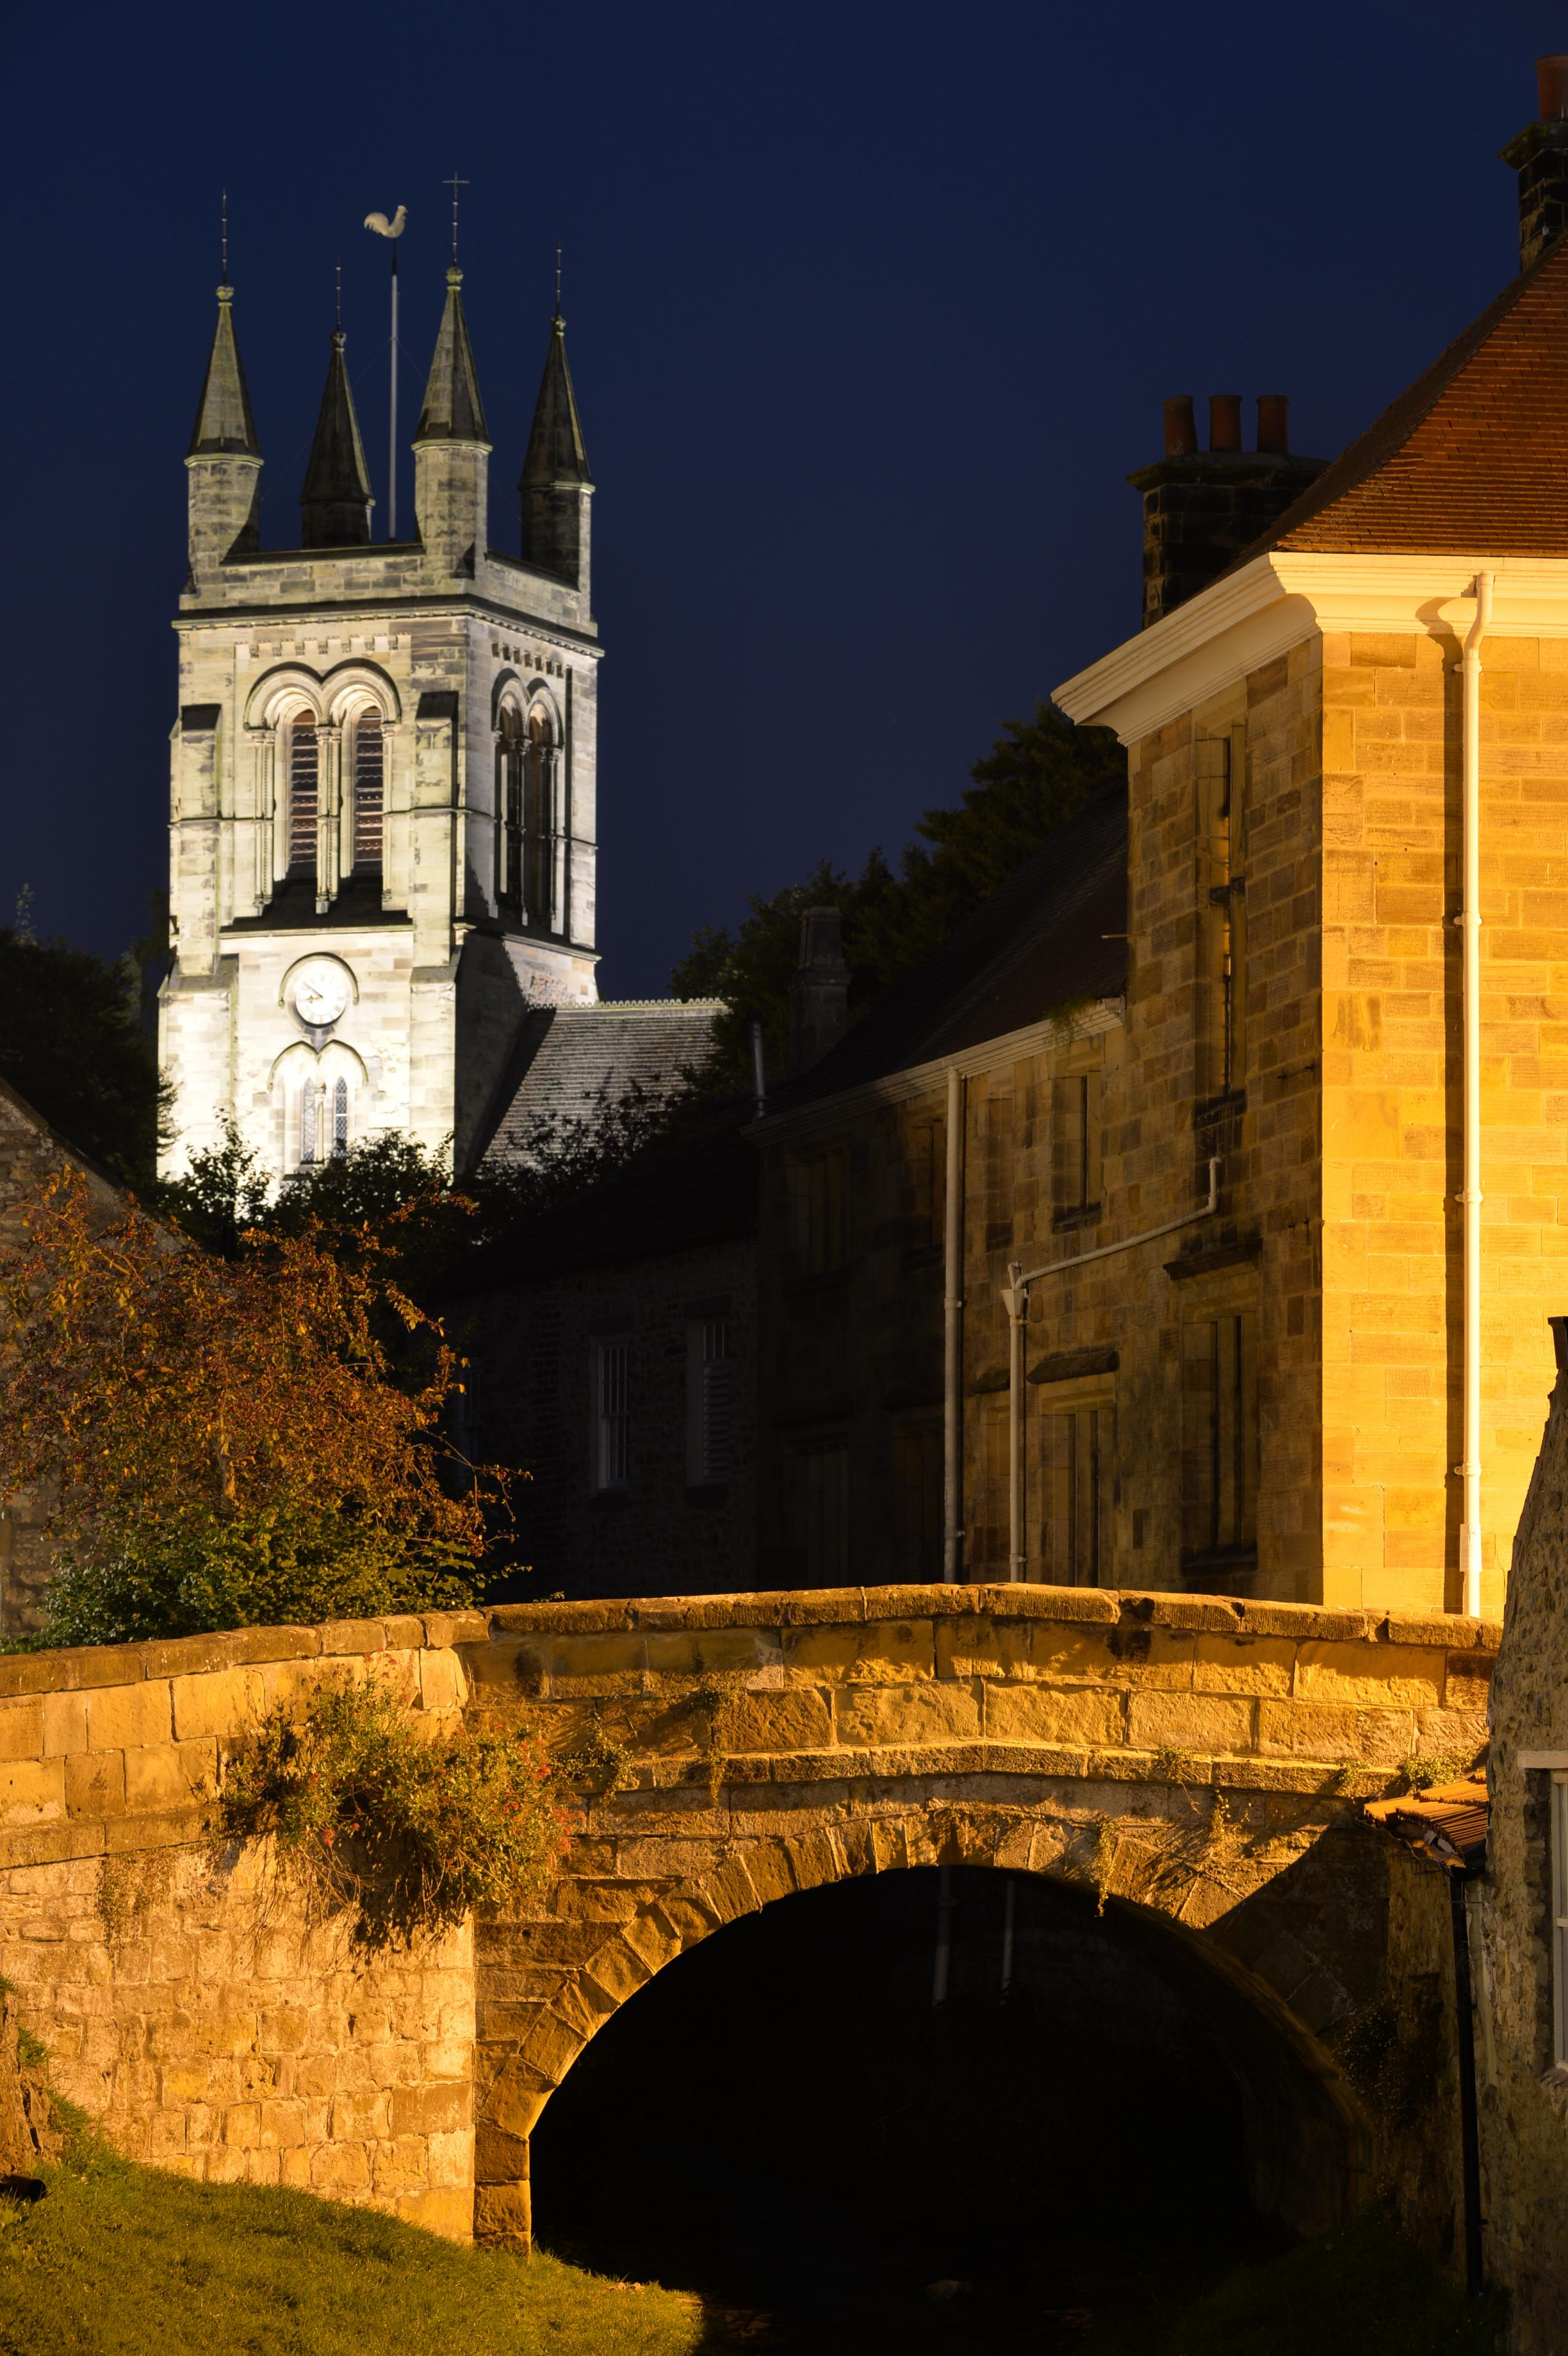 Helmsley at night by Tony Bistro